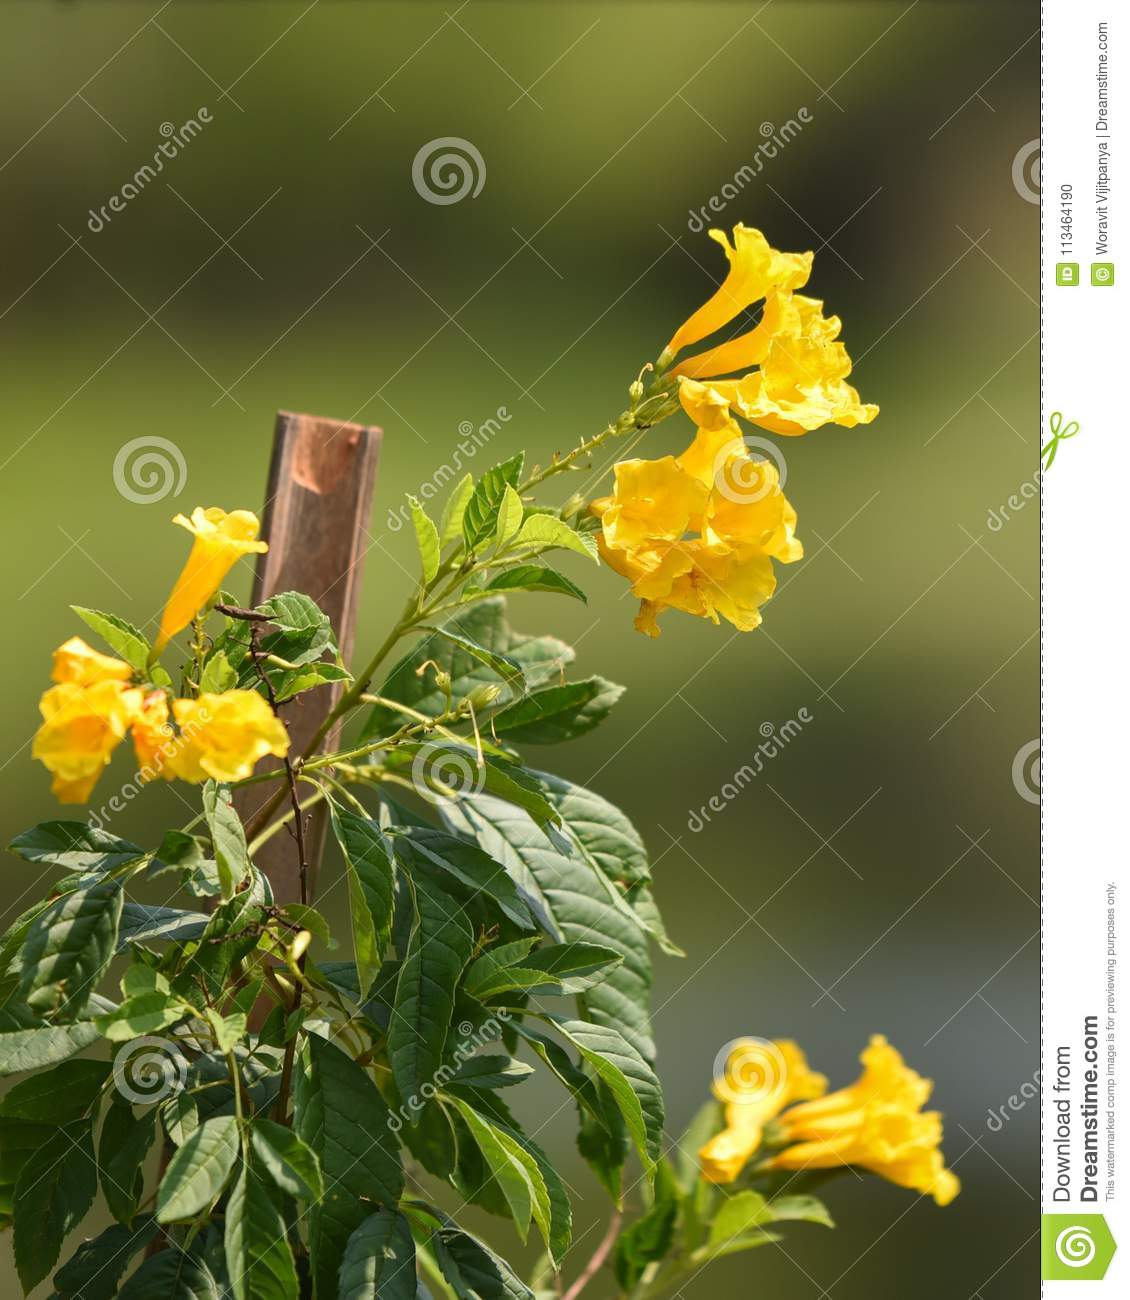 Tecoma Stans Yellow Elder Flower Stock Photo Image Of Gardening